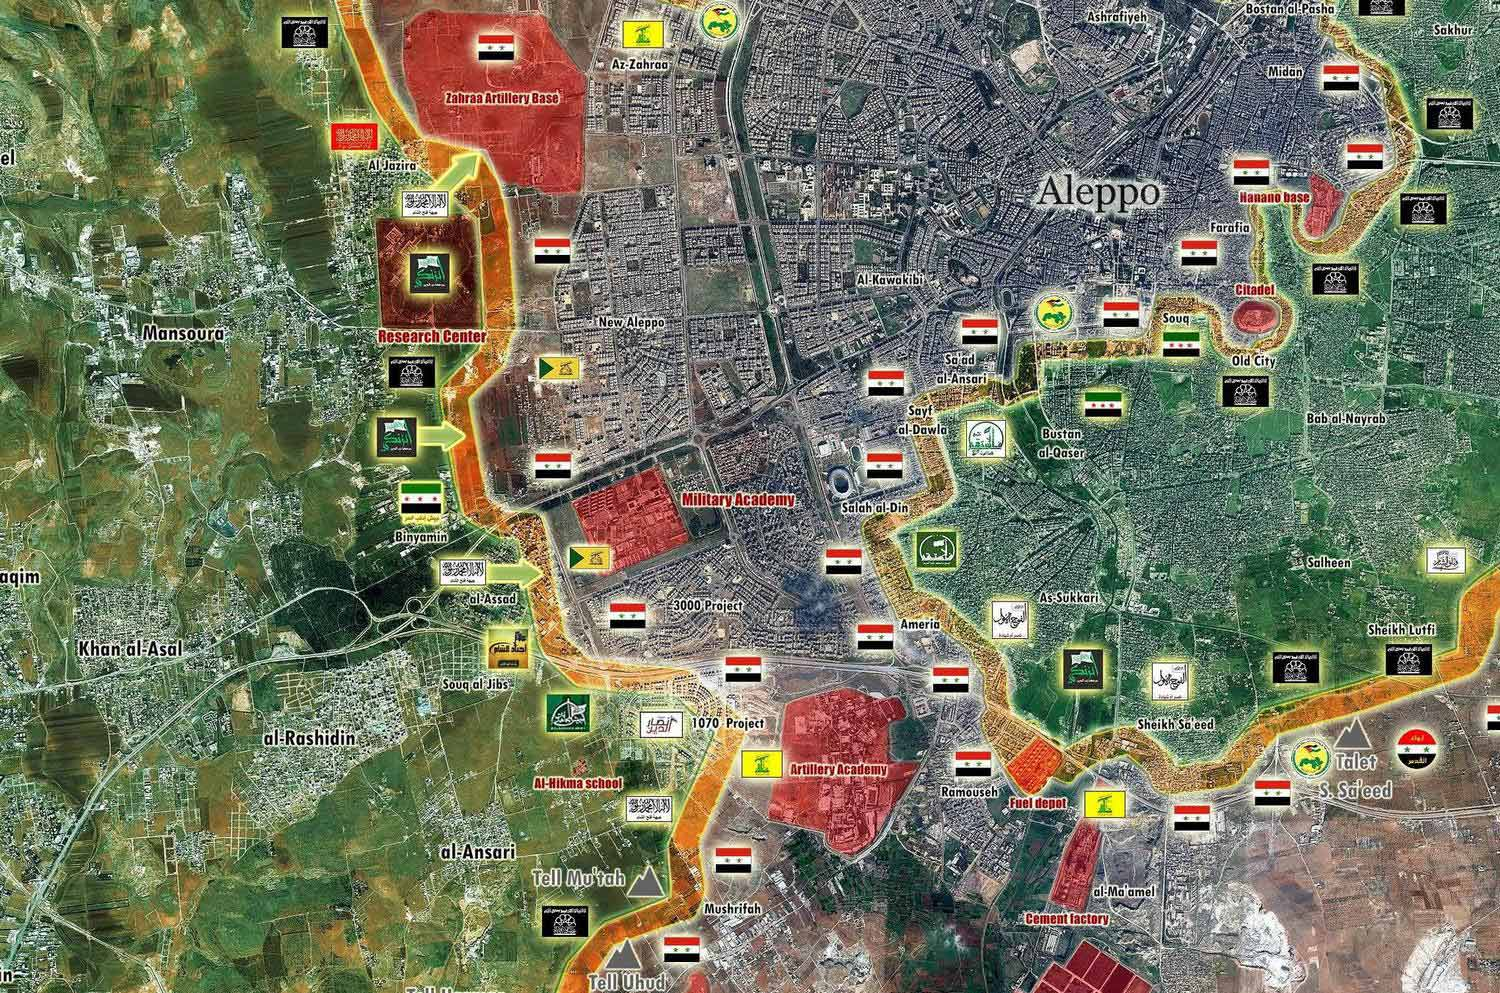 http://warsonline.info/images/stories/news/16/10okt/syria/aleppo/aleppo29okt16-map1.jpg